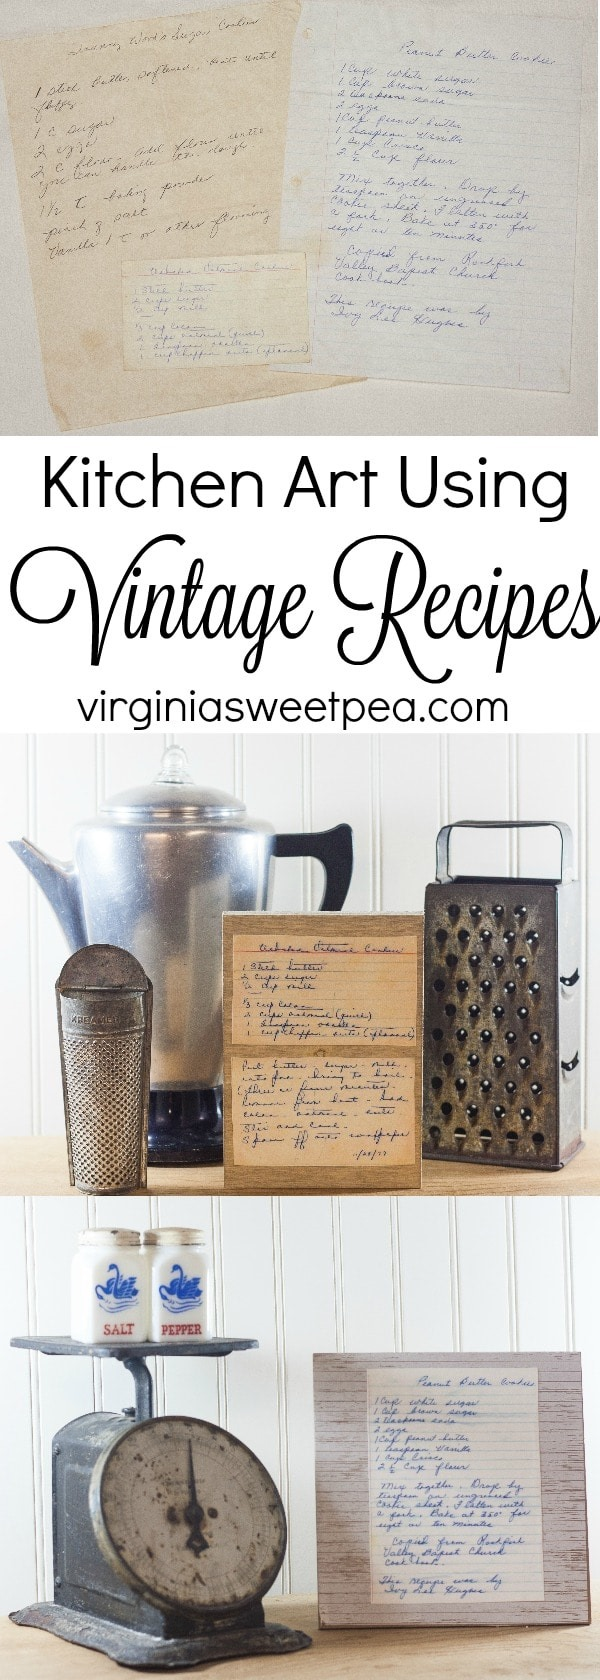 Use Vintage Recipes to Create Art for Your Kitchen - Preserve memories with this easy craft. virginiasweetpea.com